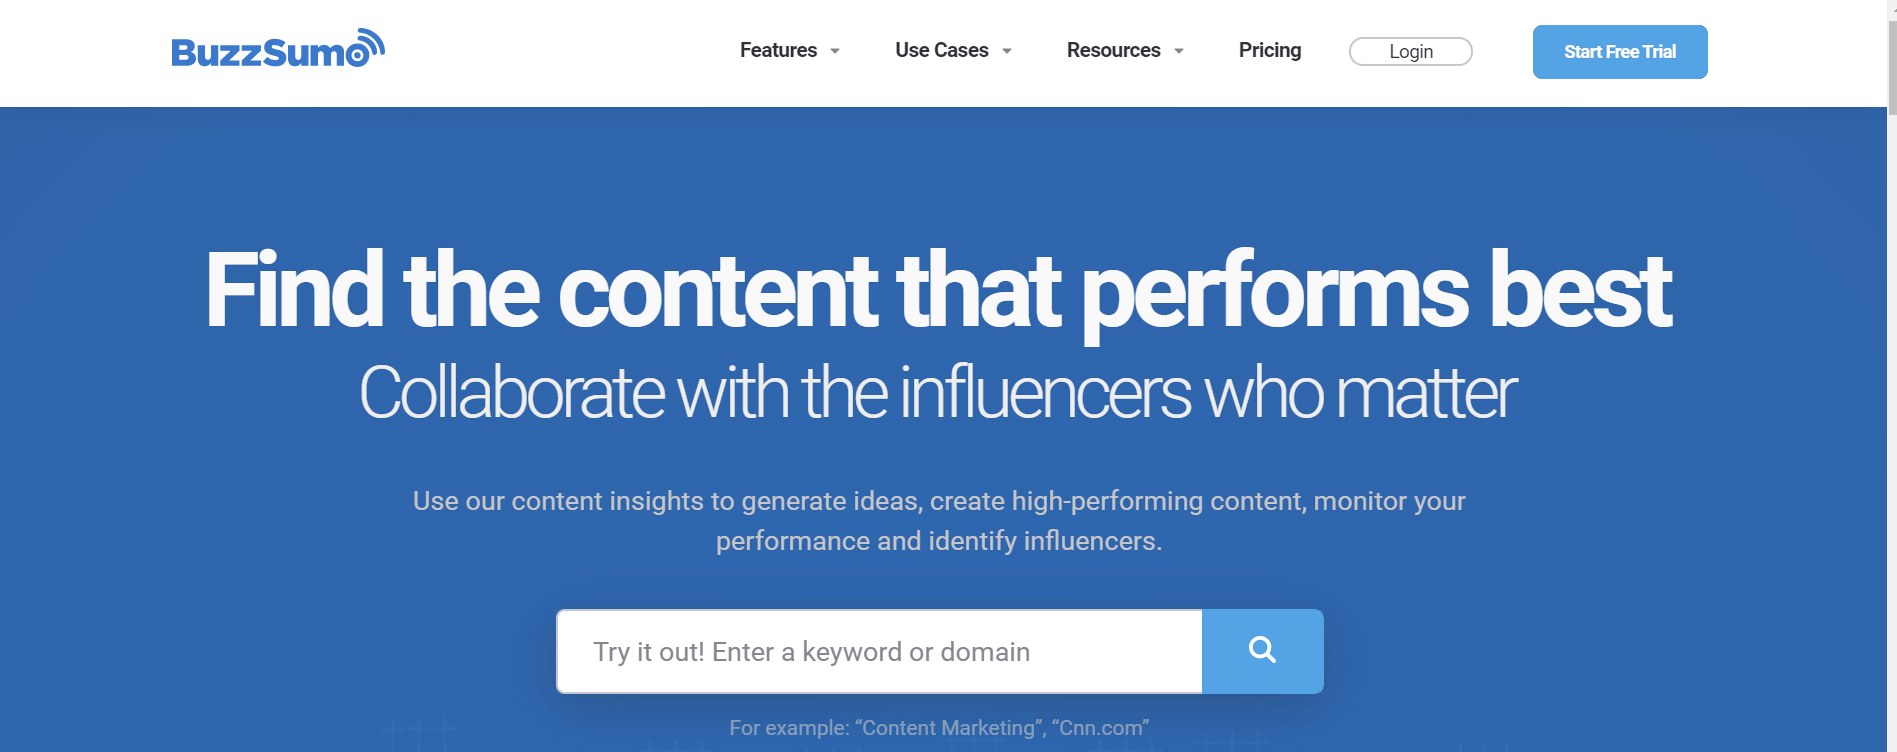 find content that performs best_image